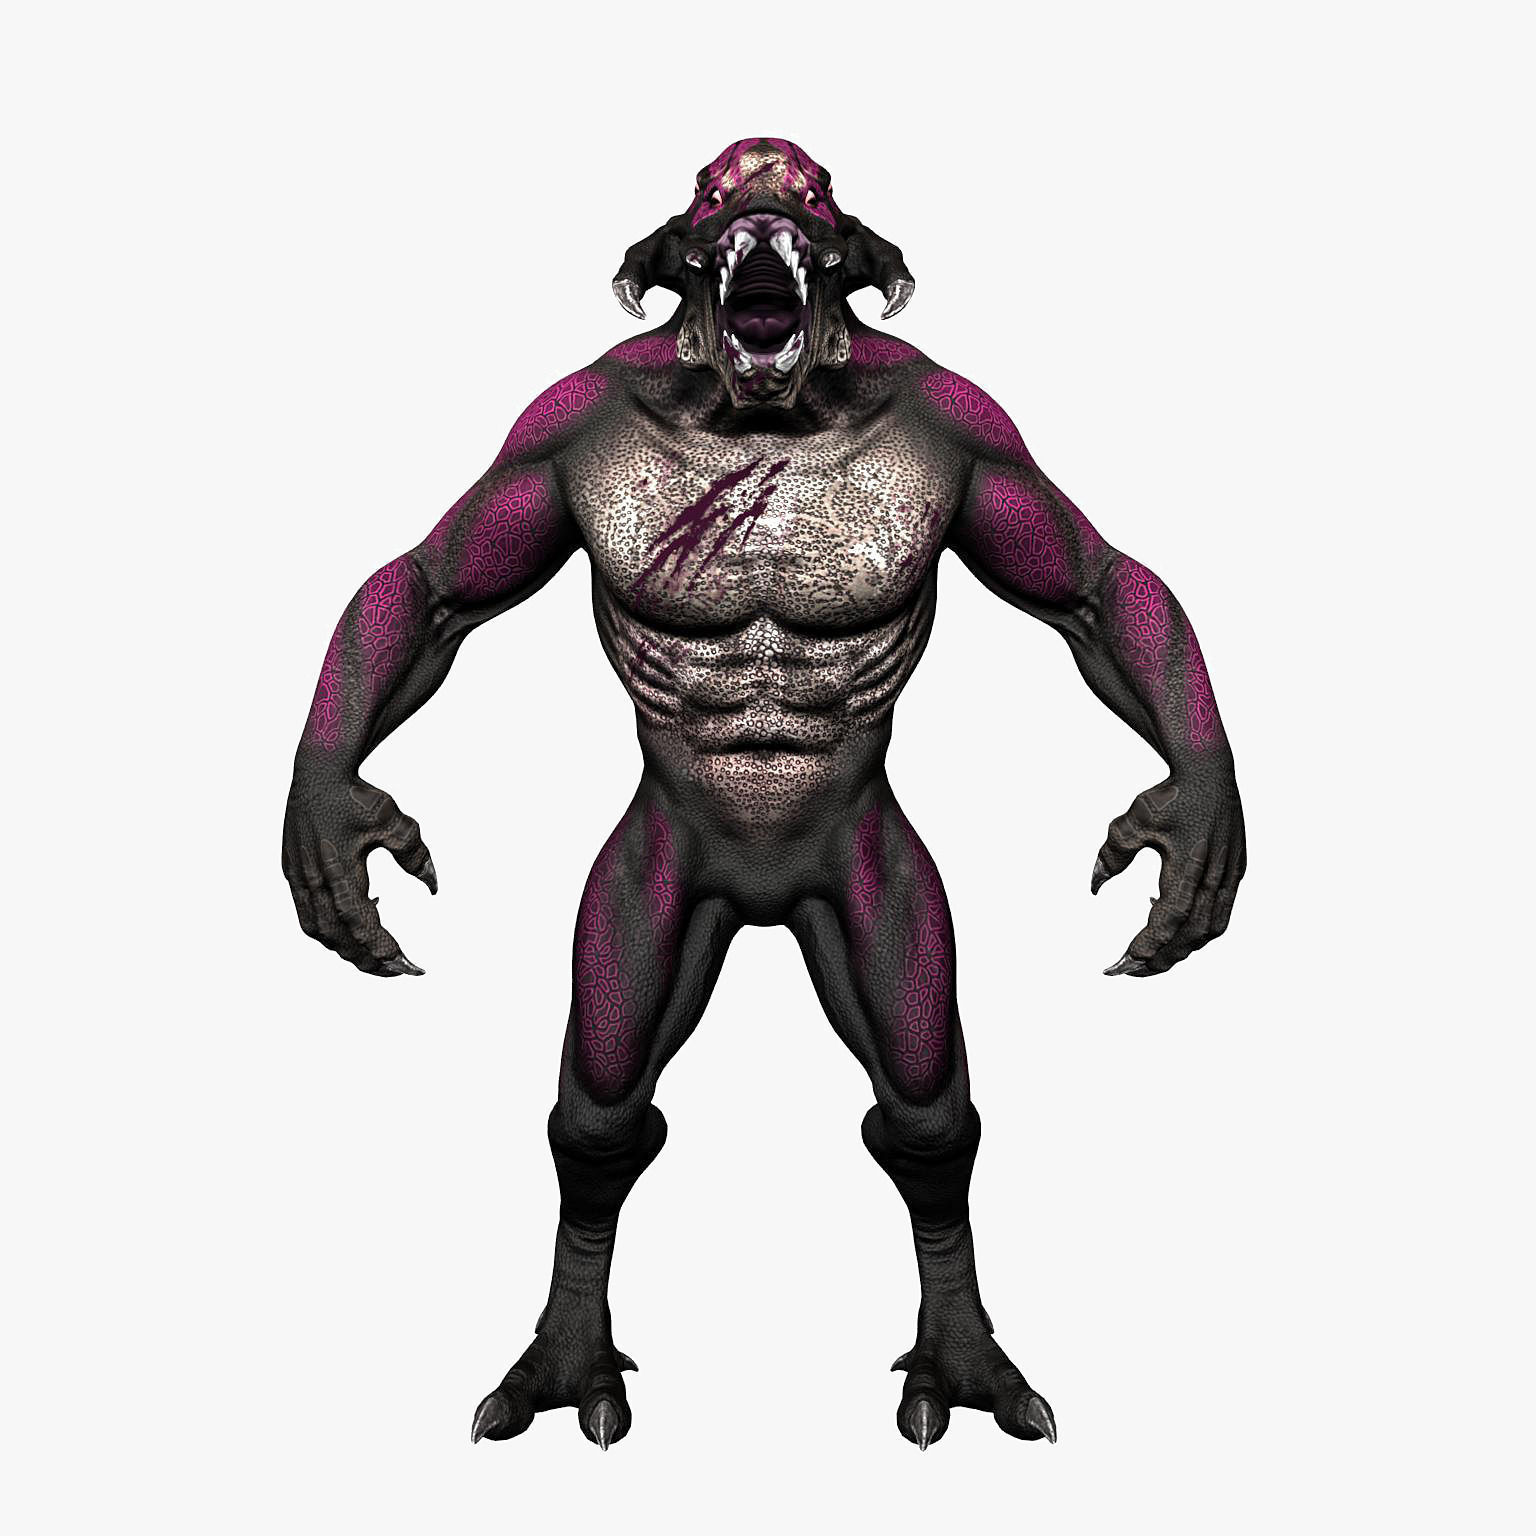 Monster 3d model game ready max obj 3ds fbx for Monster 3d model